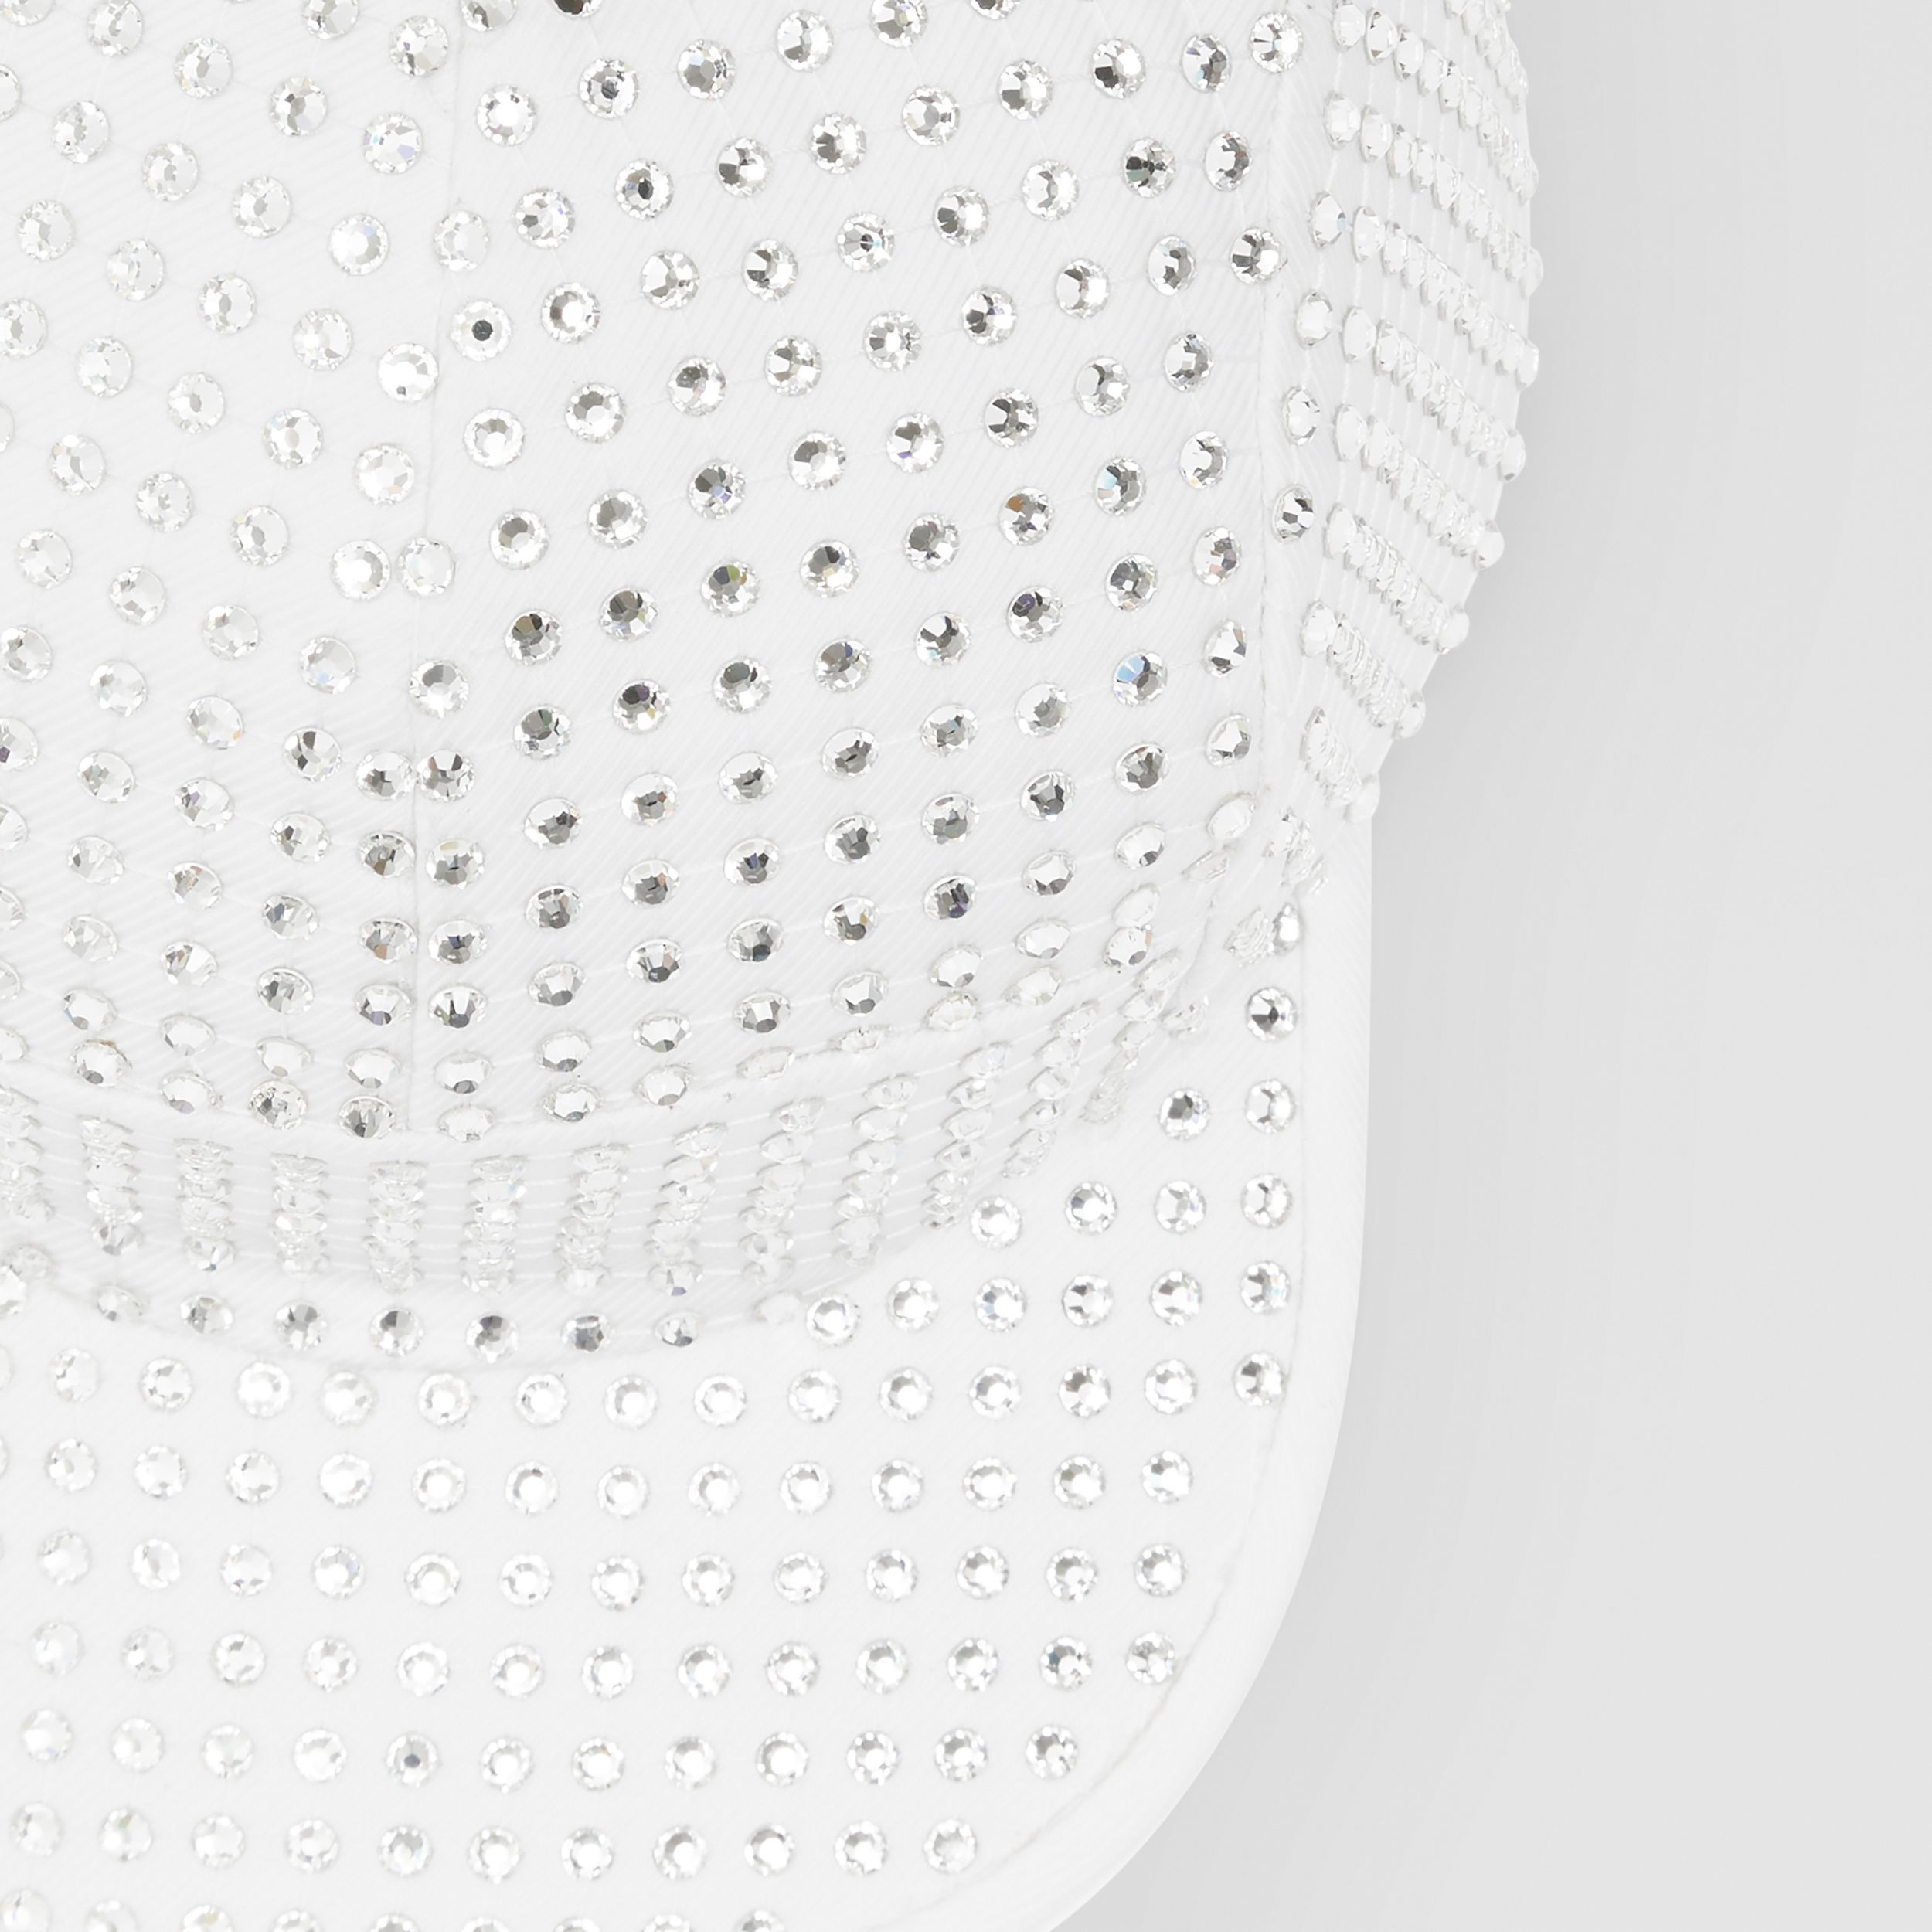 Crystal Mesh Detail Cotton Twill Cap in Optic White | Burberry Hong Kong S.A.R. - 2